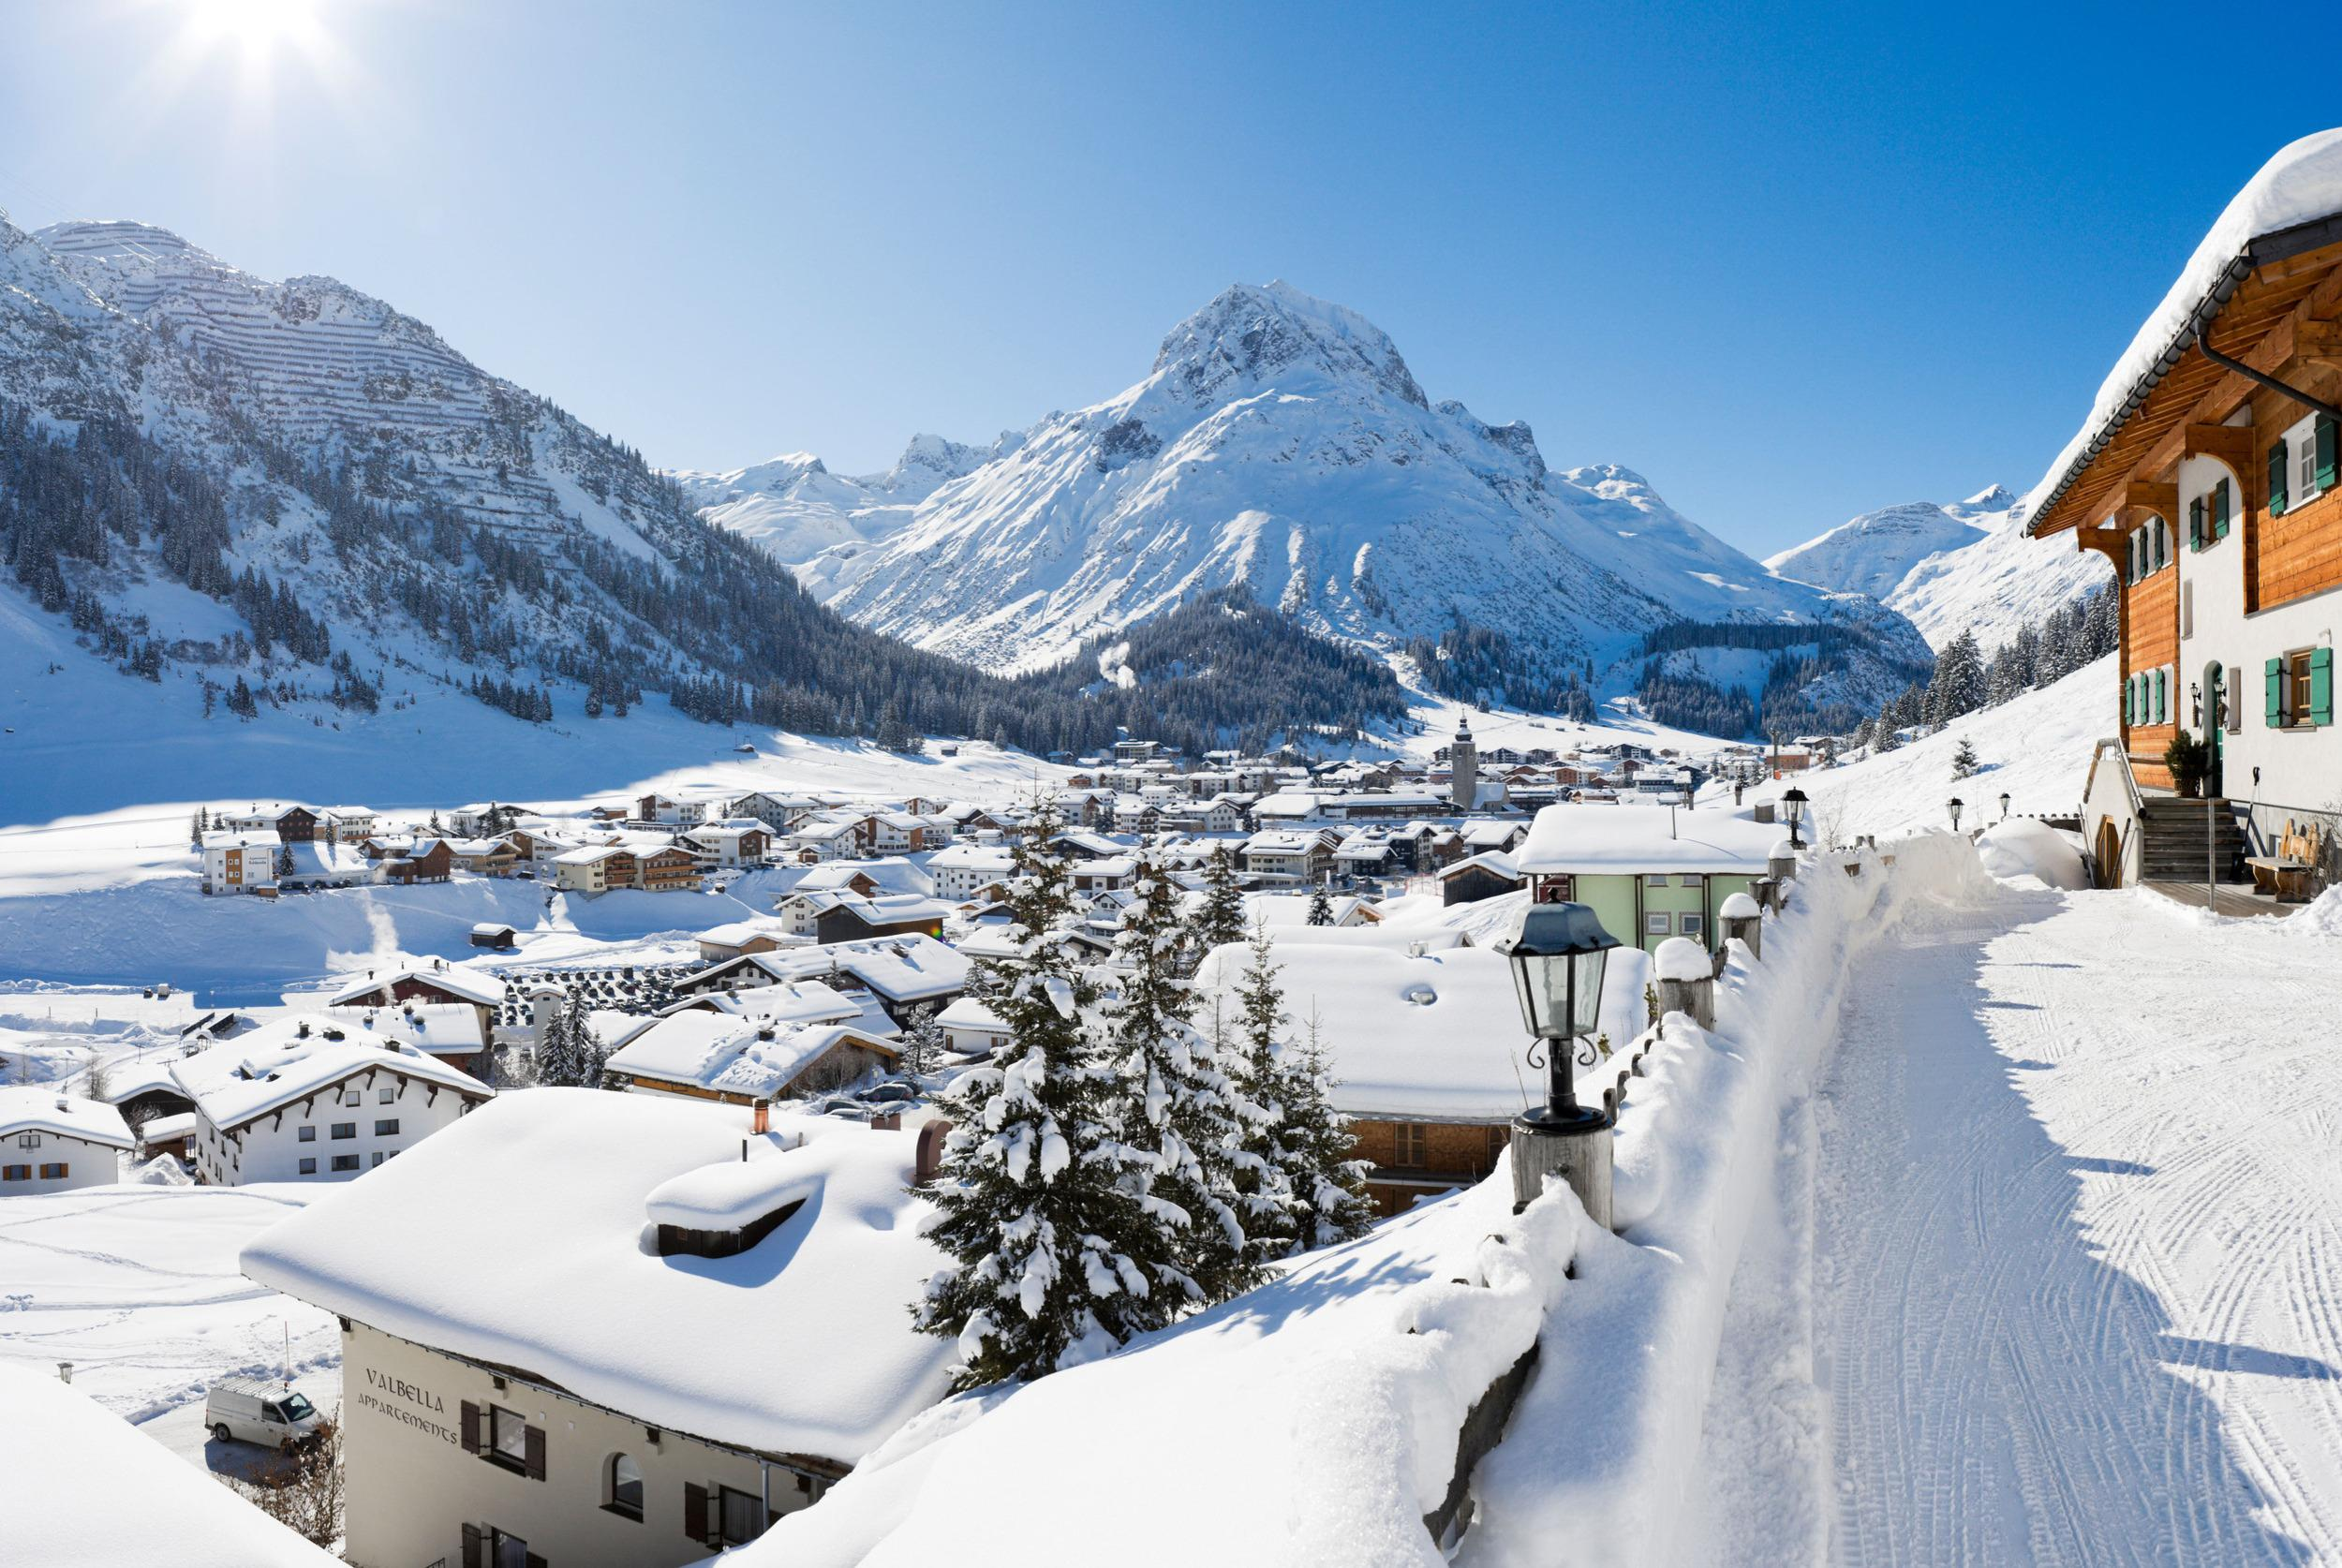 View over the centre of the resort of Lech, Arlberg ski region, Vorarlberg, Austria.